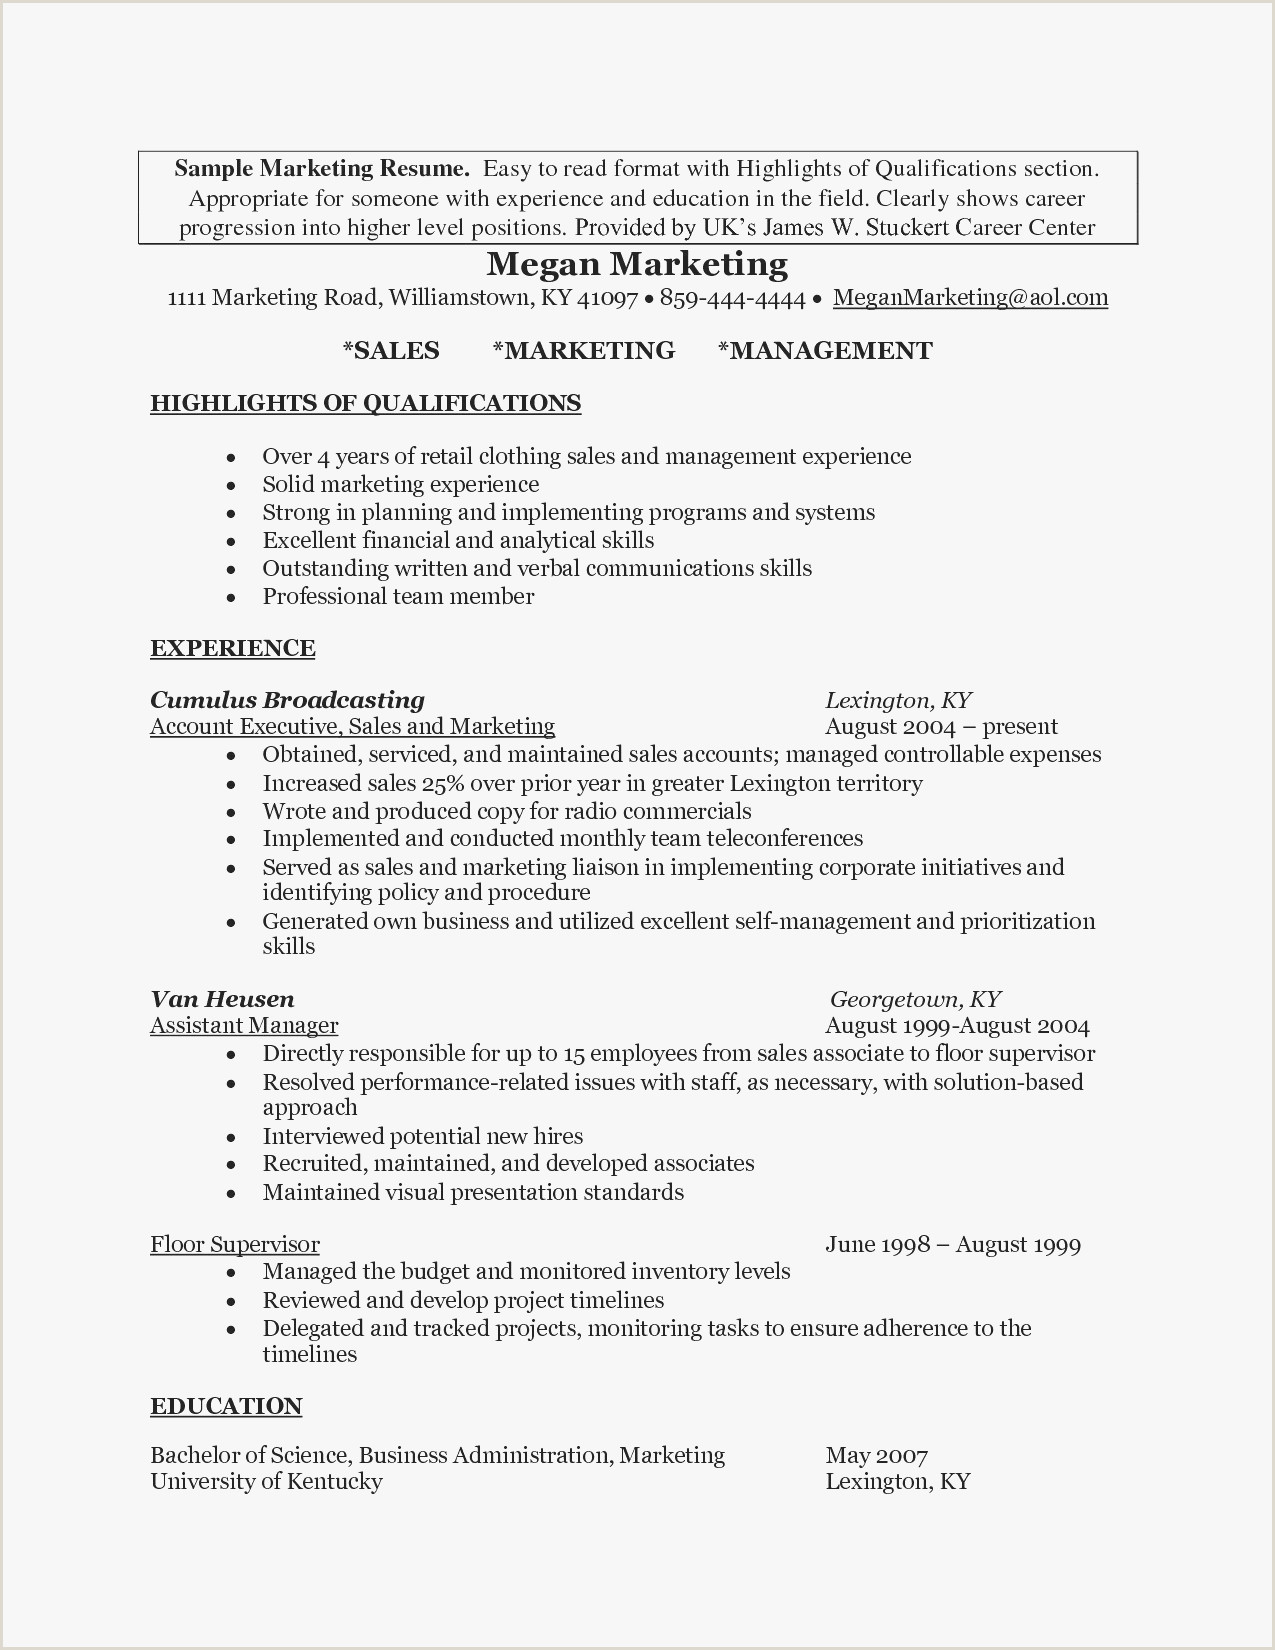 Professional Cv format Sales Marketing Marketing Resume Sample Best American Resume Sample New